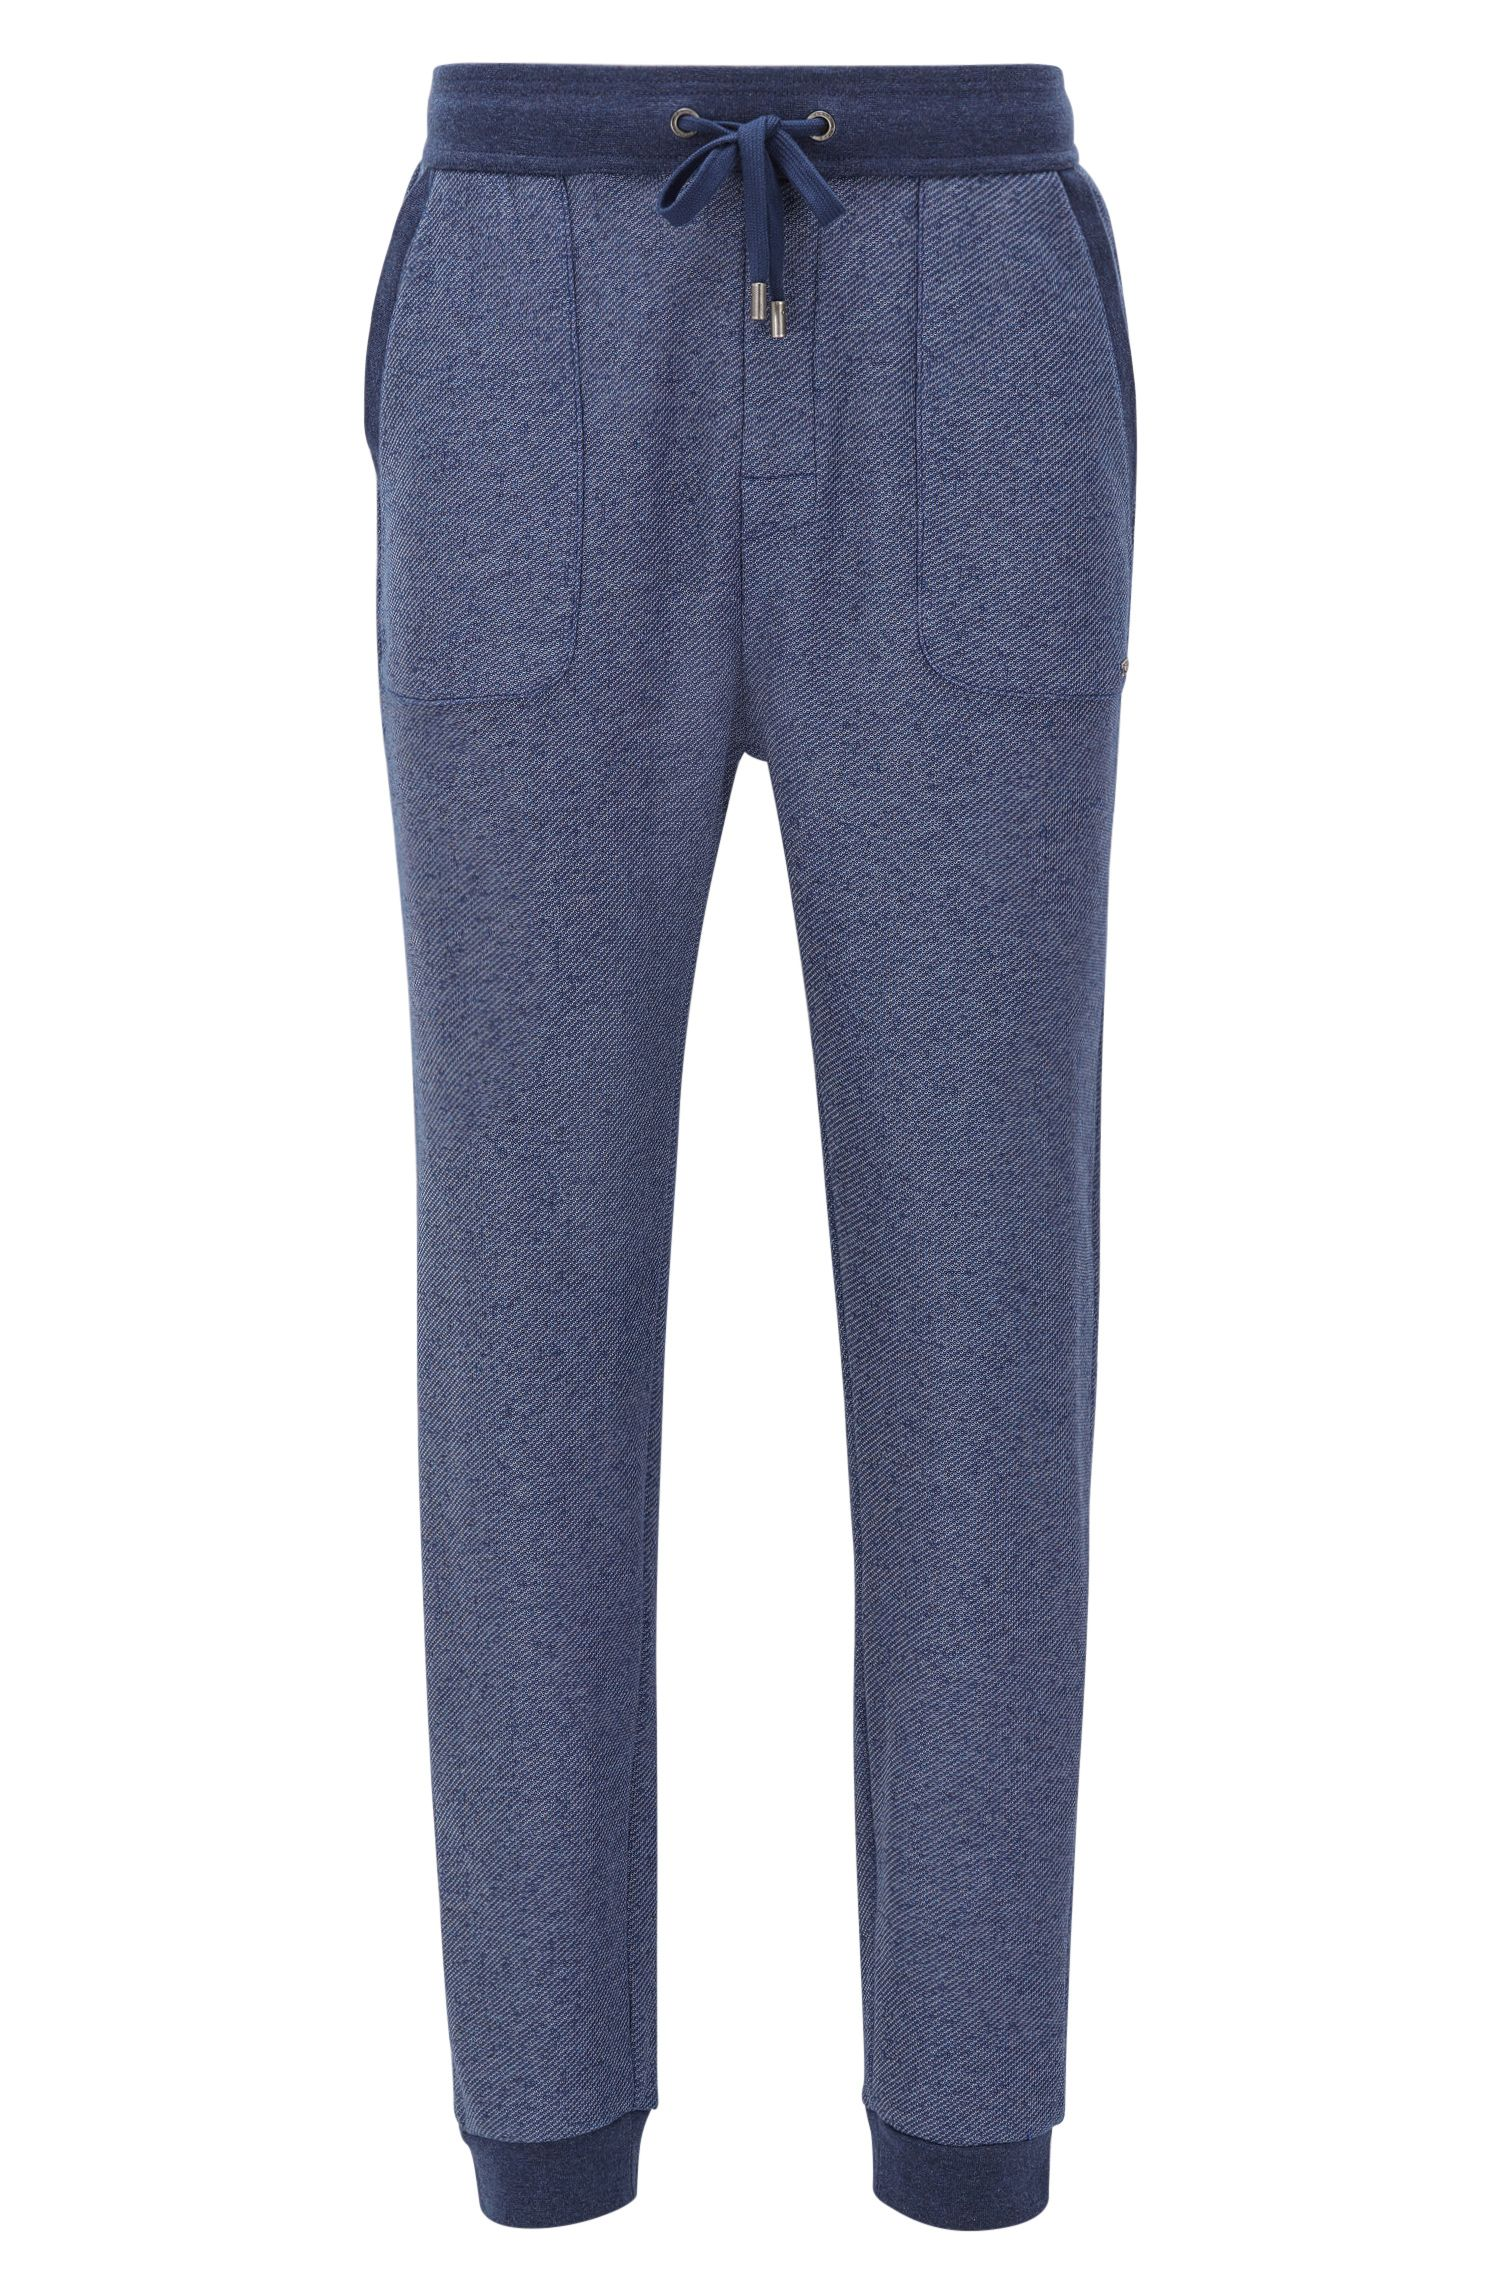 Jersey Sweatpants | Long Pant Cuffs